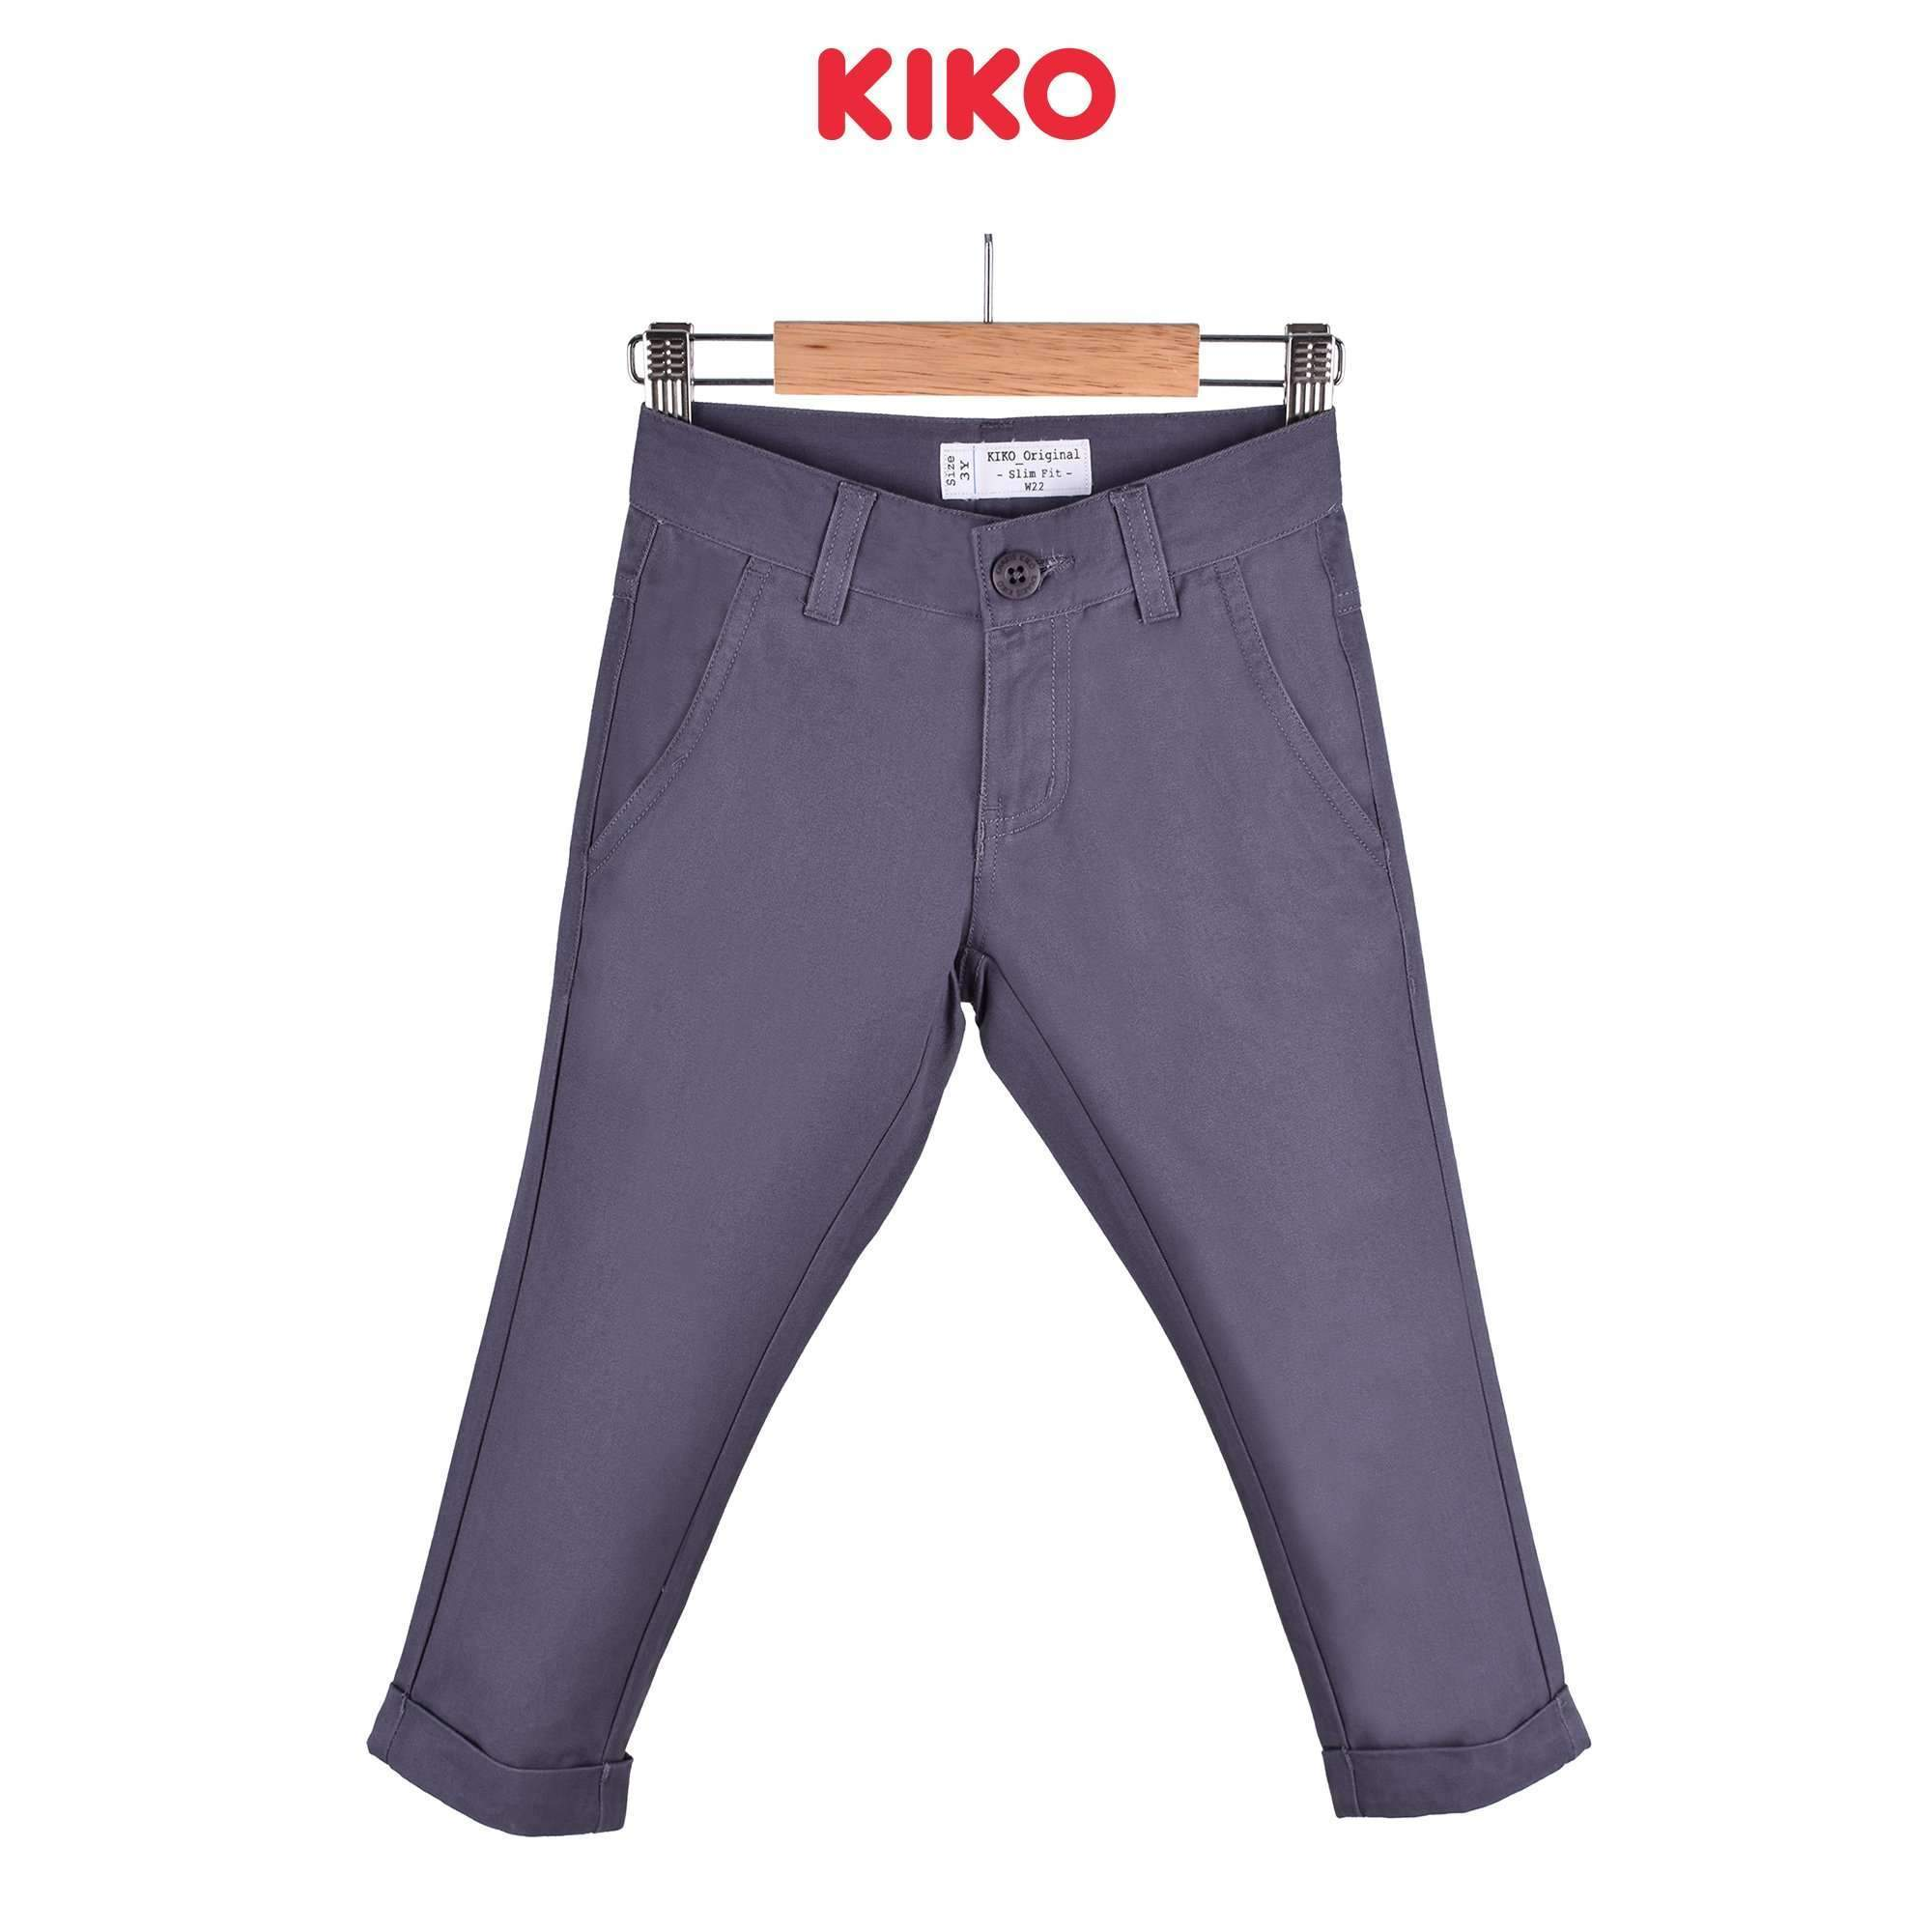 KIKO Boy Long Pants Slim Fit 120063-252 : Buy KIKO online at CMG.MY